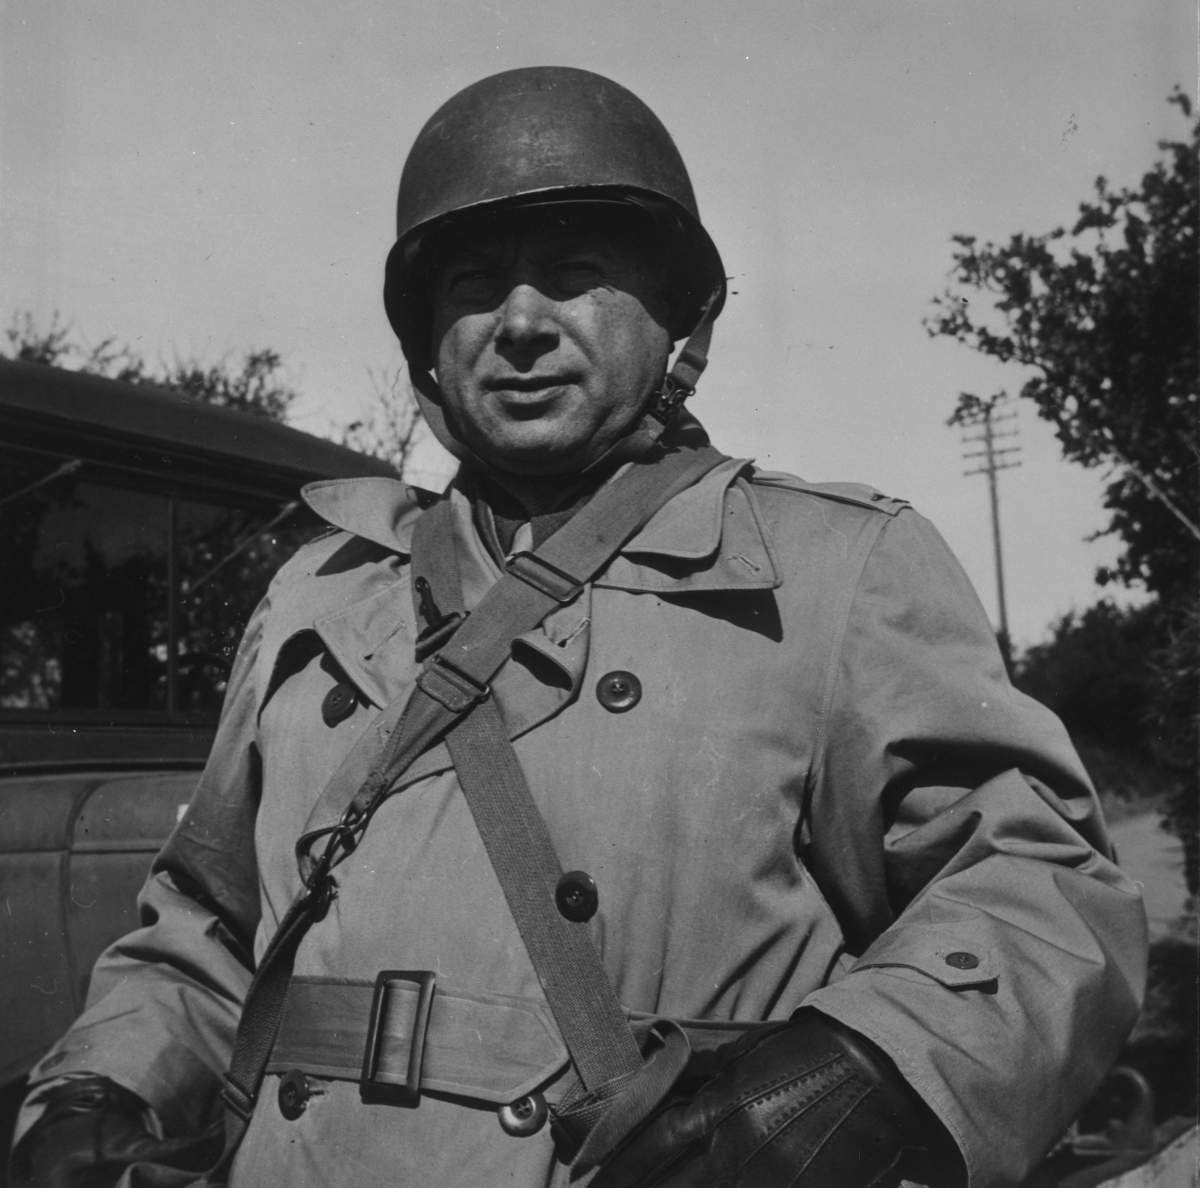 Sarnoff in uniform in the Army